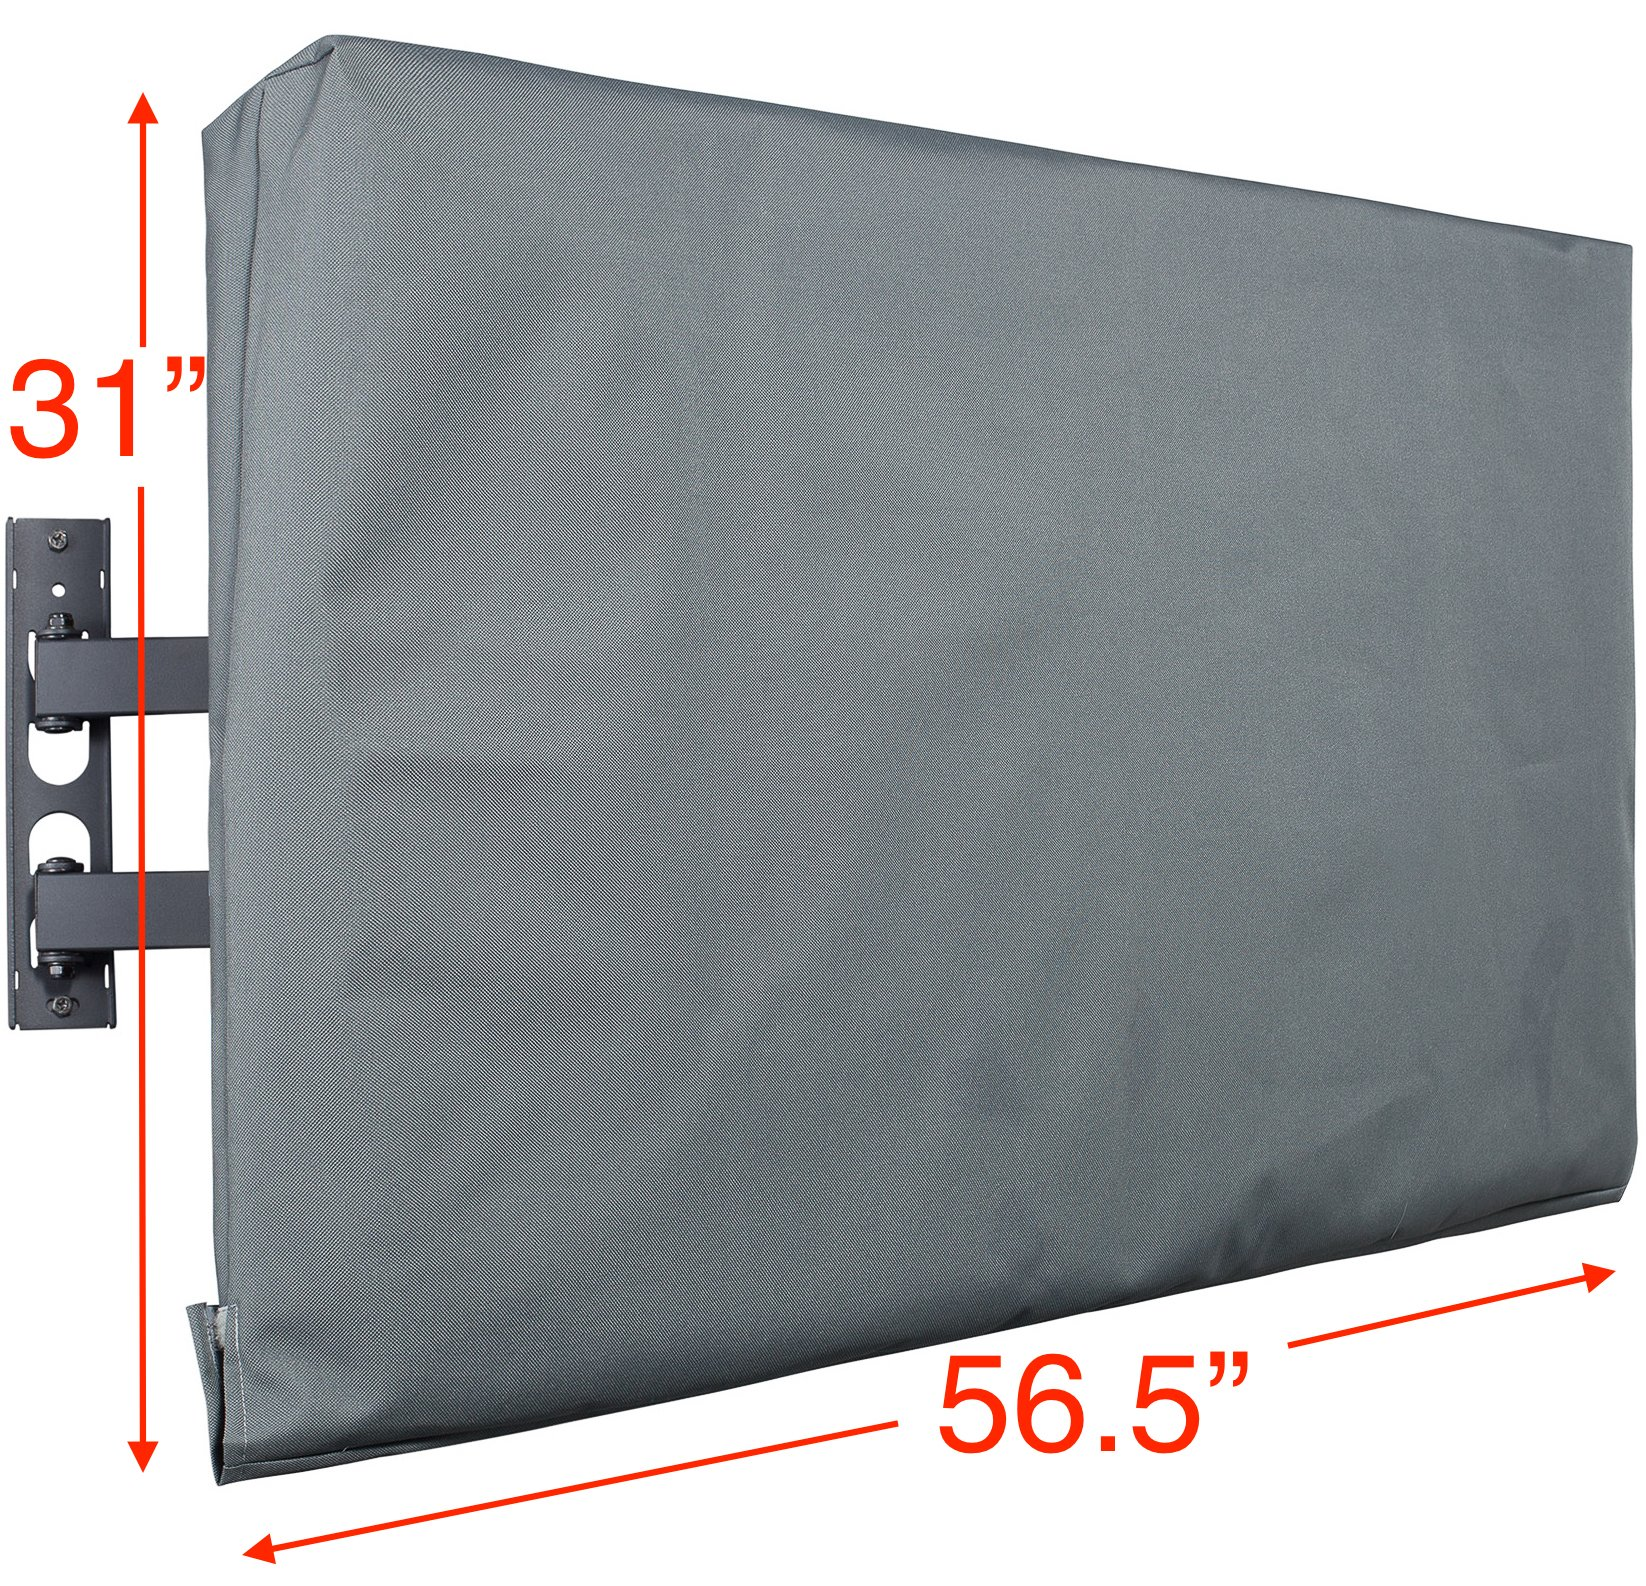 Kuzy Outdoor TV Cover 55 inch, Outdoor TV Covers Weatherproof for 55 inch Flat Screen TV - Fits Most Wall TV Mount, Hand Made in USA - Gray by Kuzy